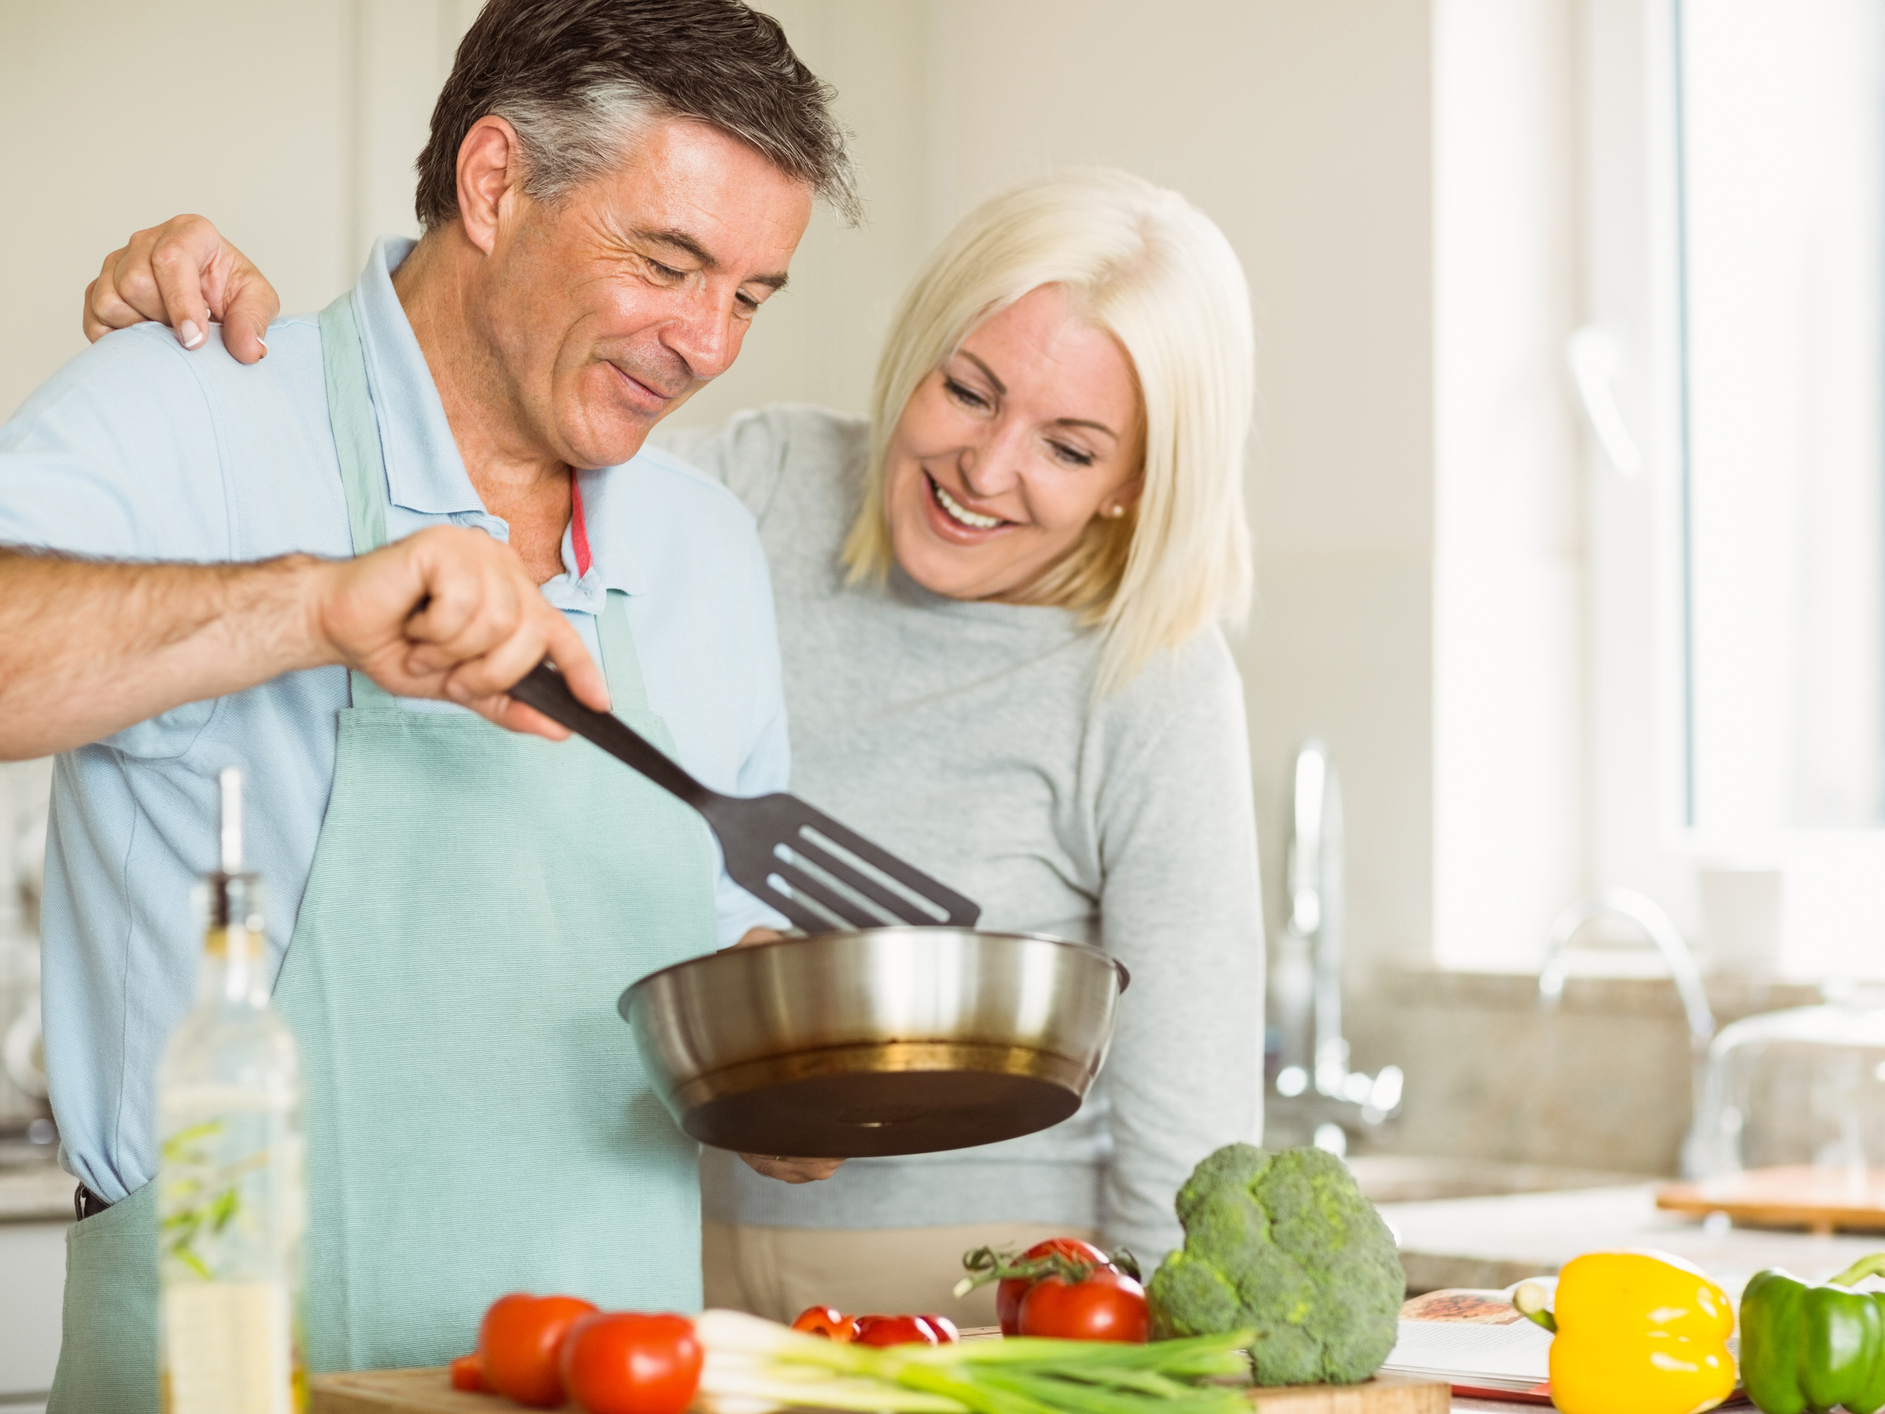 The diet that improves aging (even in nursing home residents!)